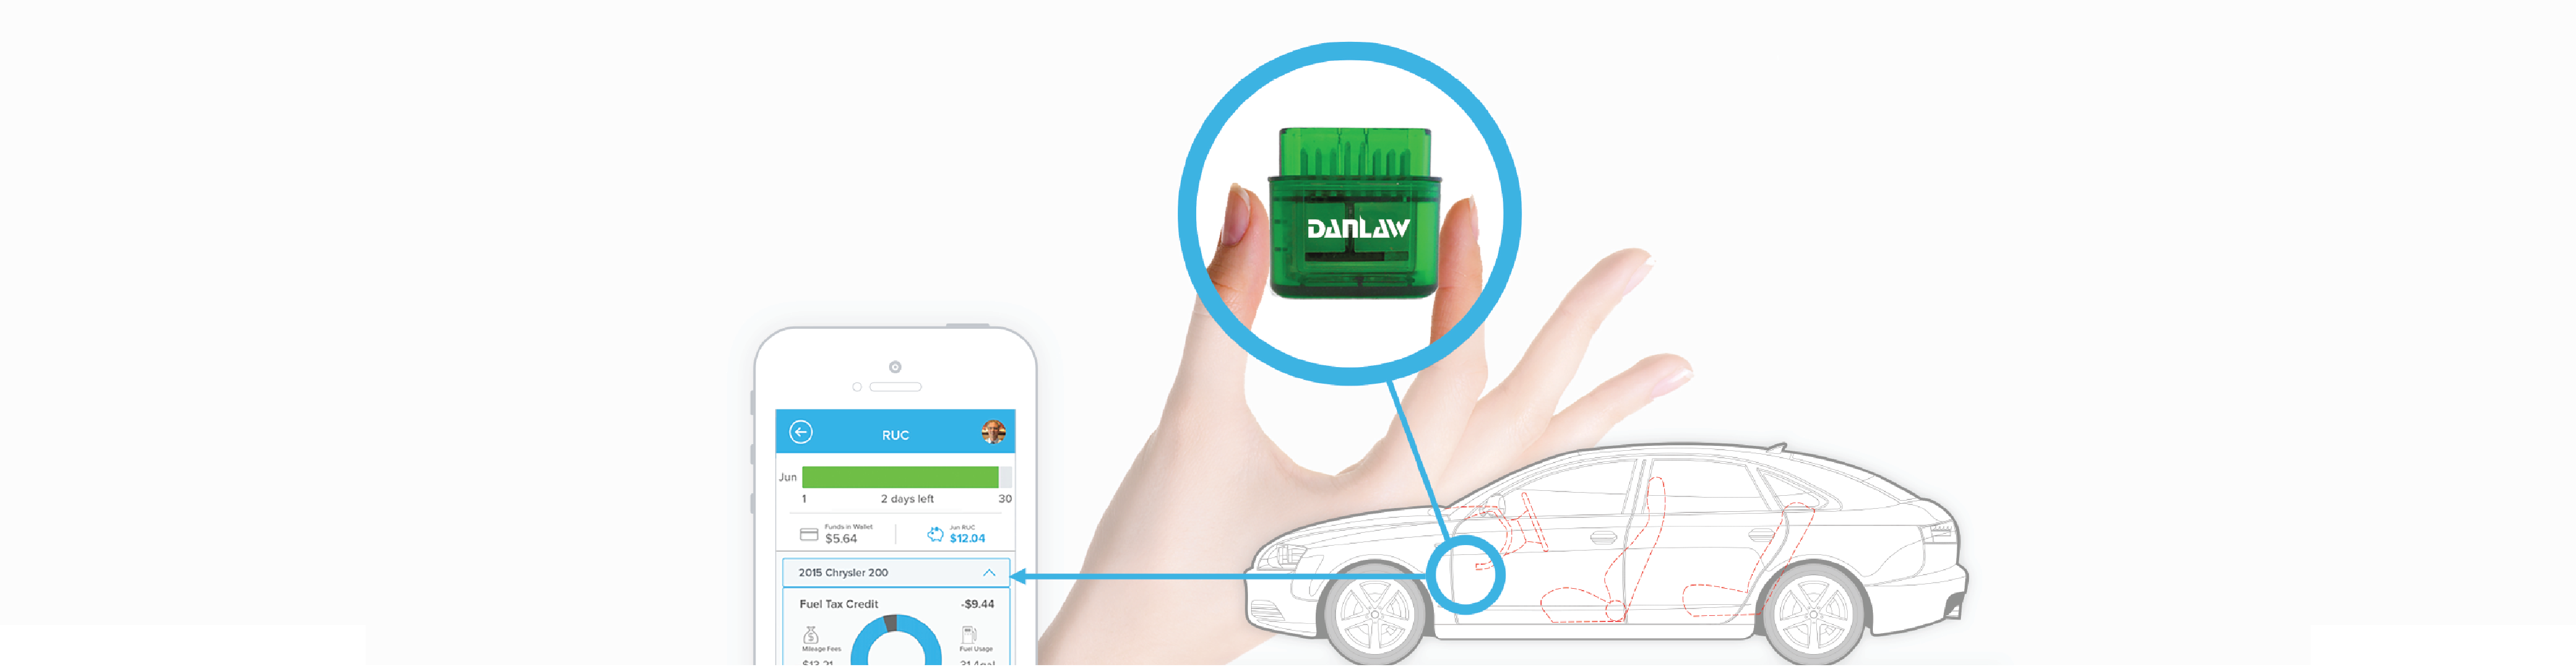 Danlaw Launches OBDII Device with Texas Instruments SimpleLink™ Bluetooth® CC2564 solution